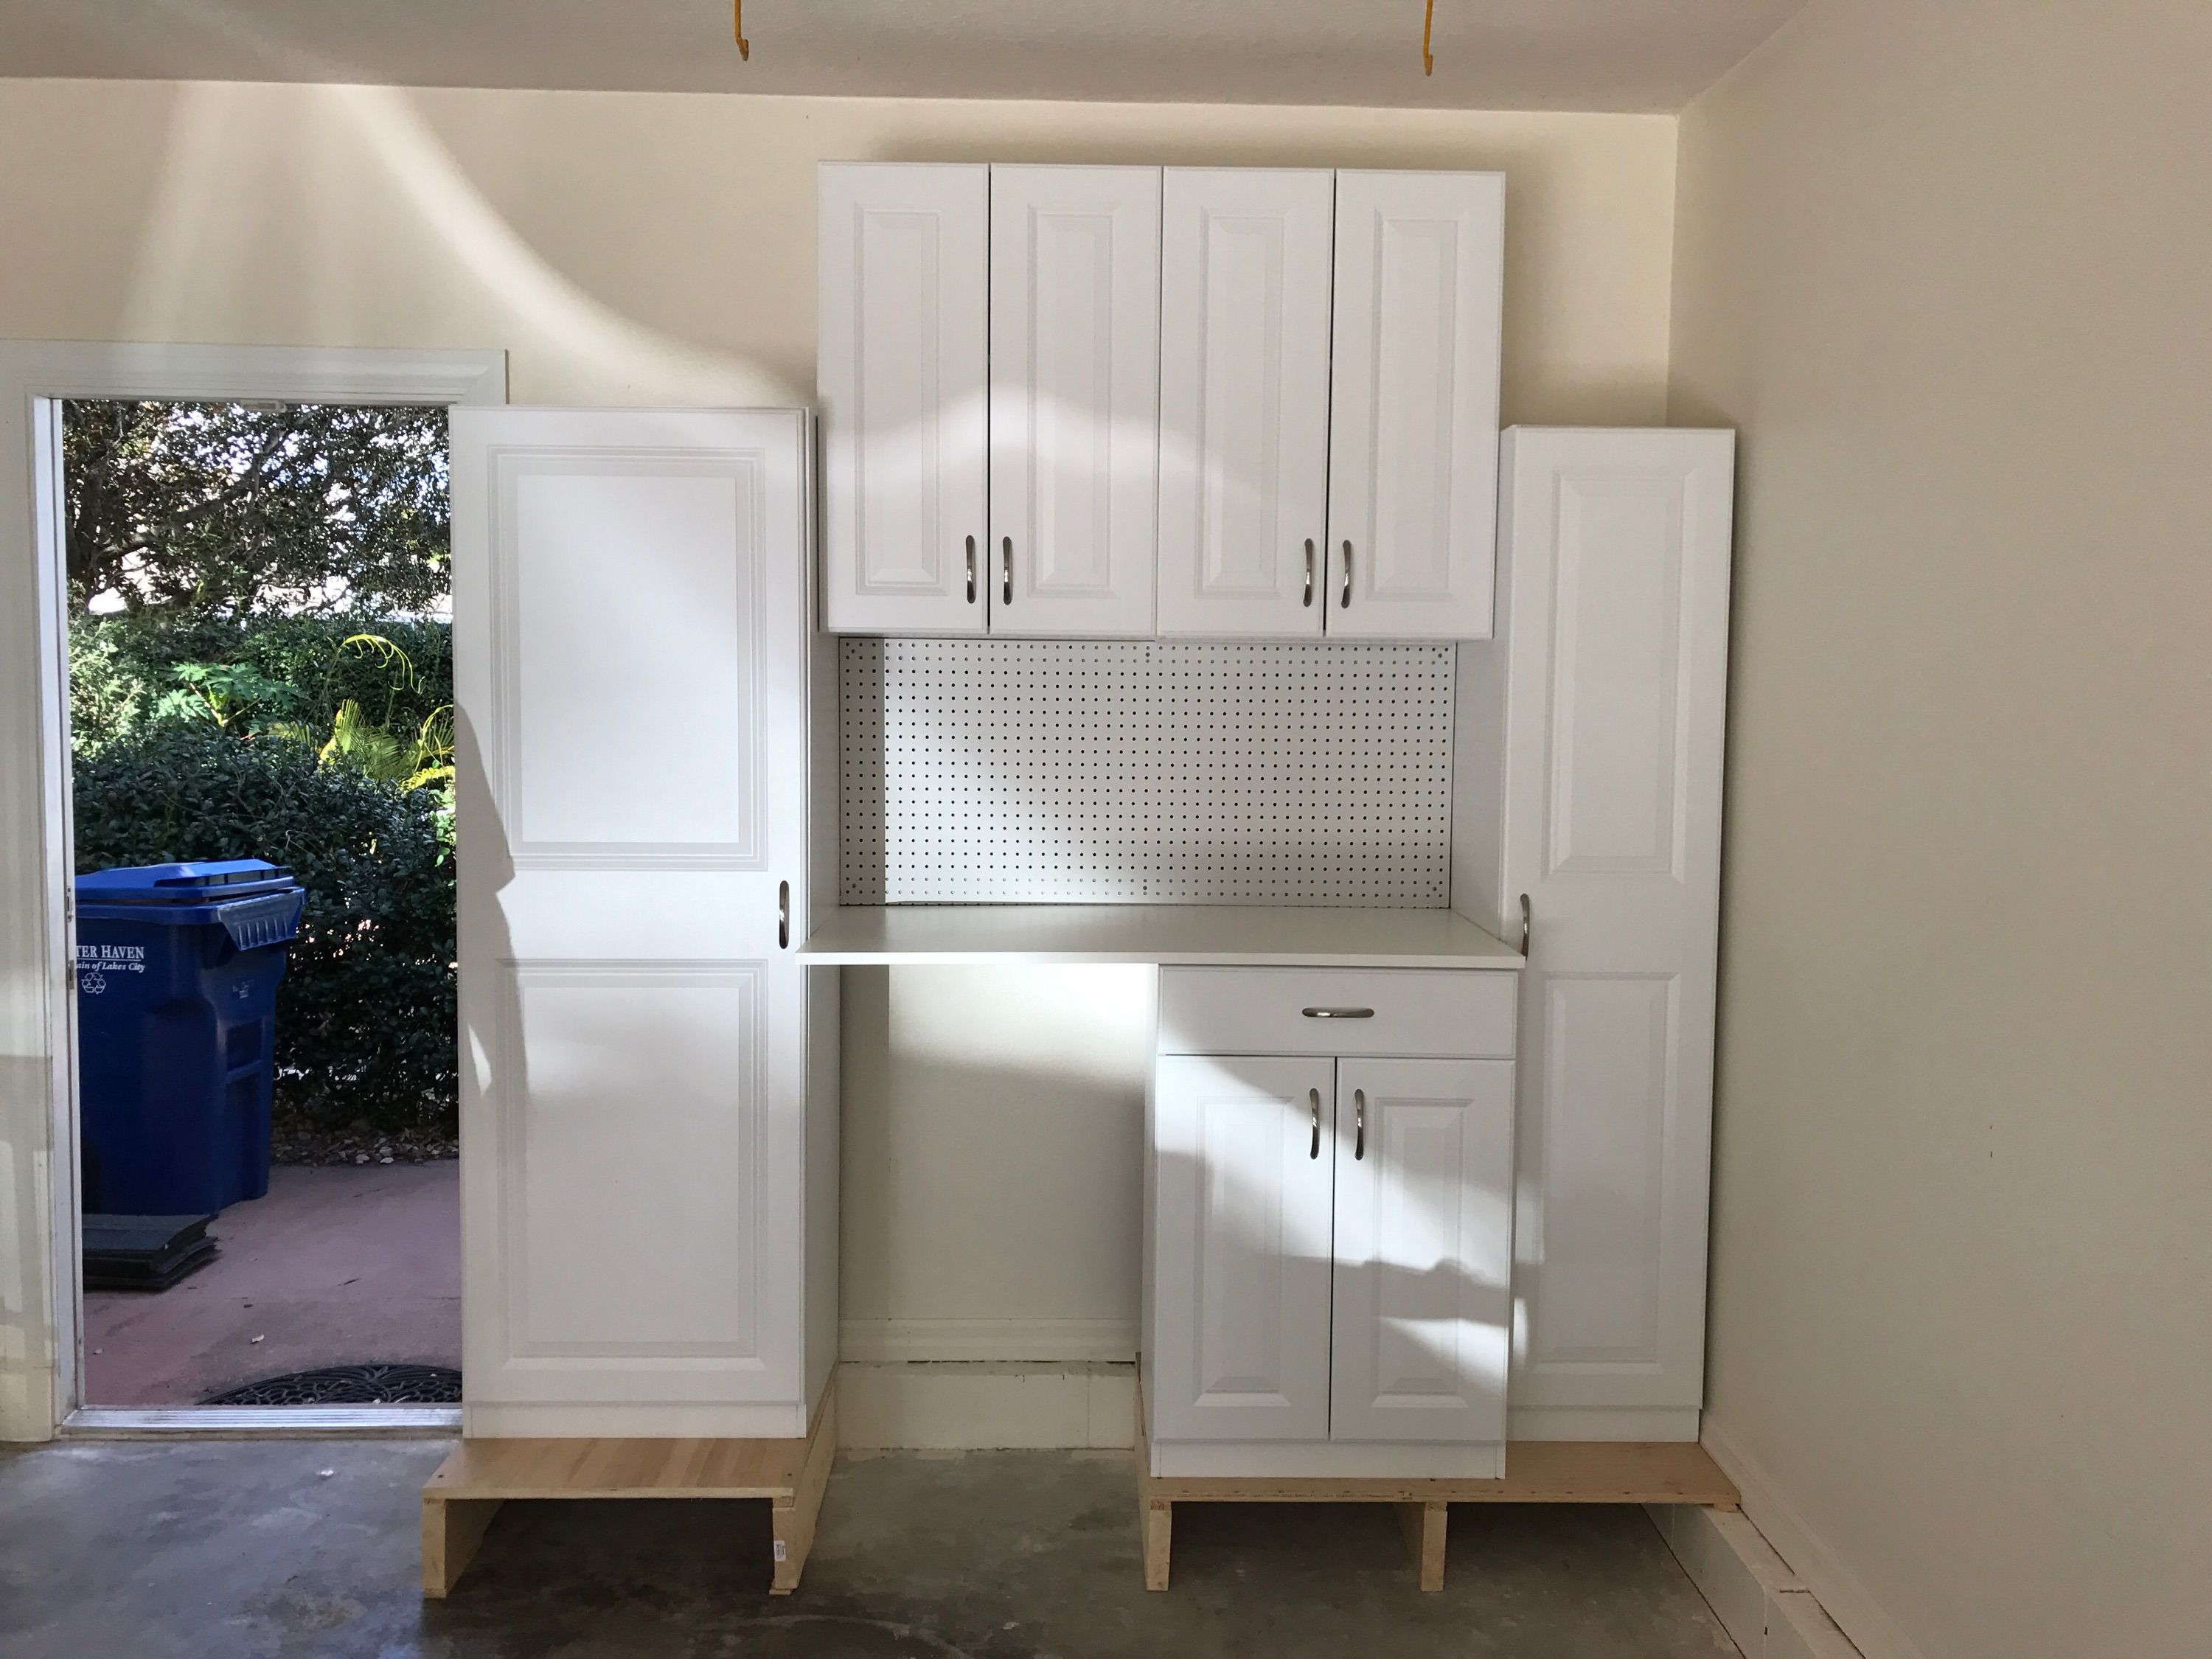 Attirant Estate Cabinets By RSI From Loweu0027s. Nice Storage Cabinets In My Garage.